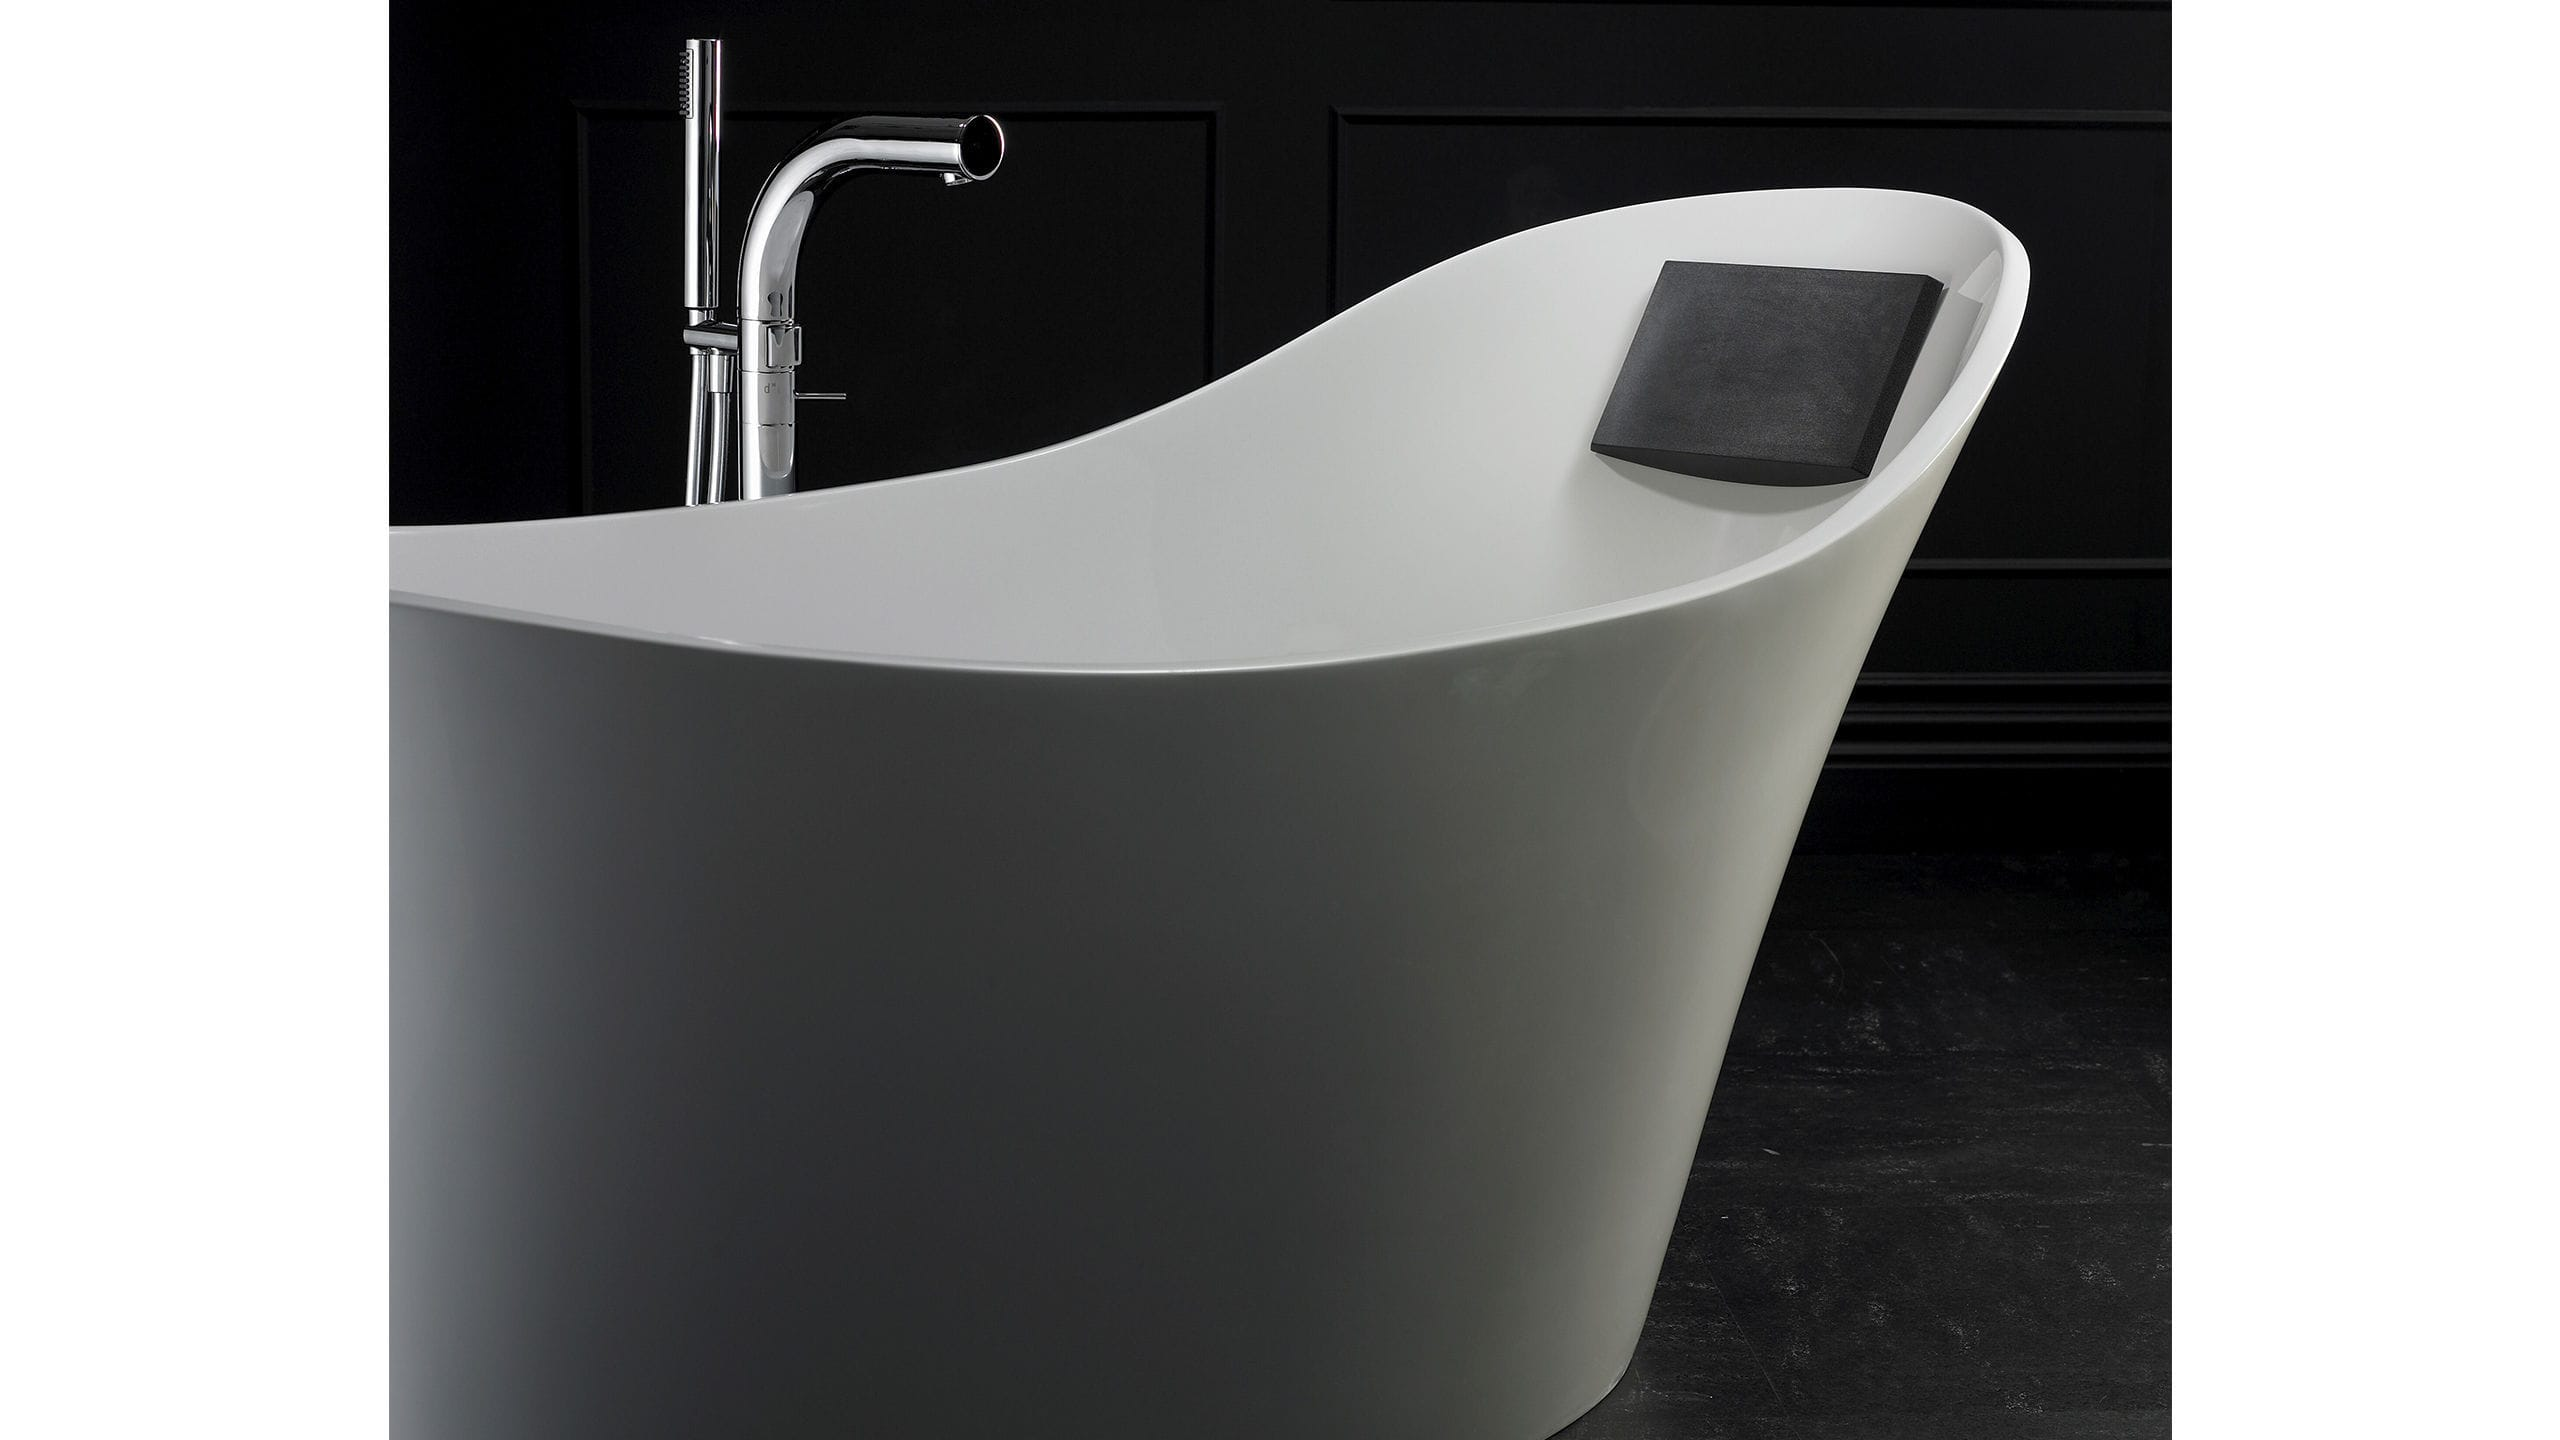 Bathtub backrest headrest -  Bathtub Headrest Amalfi Victoria Albert